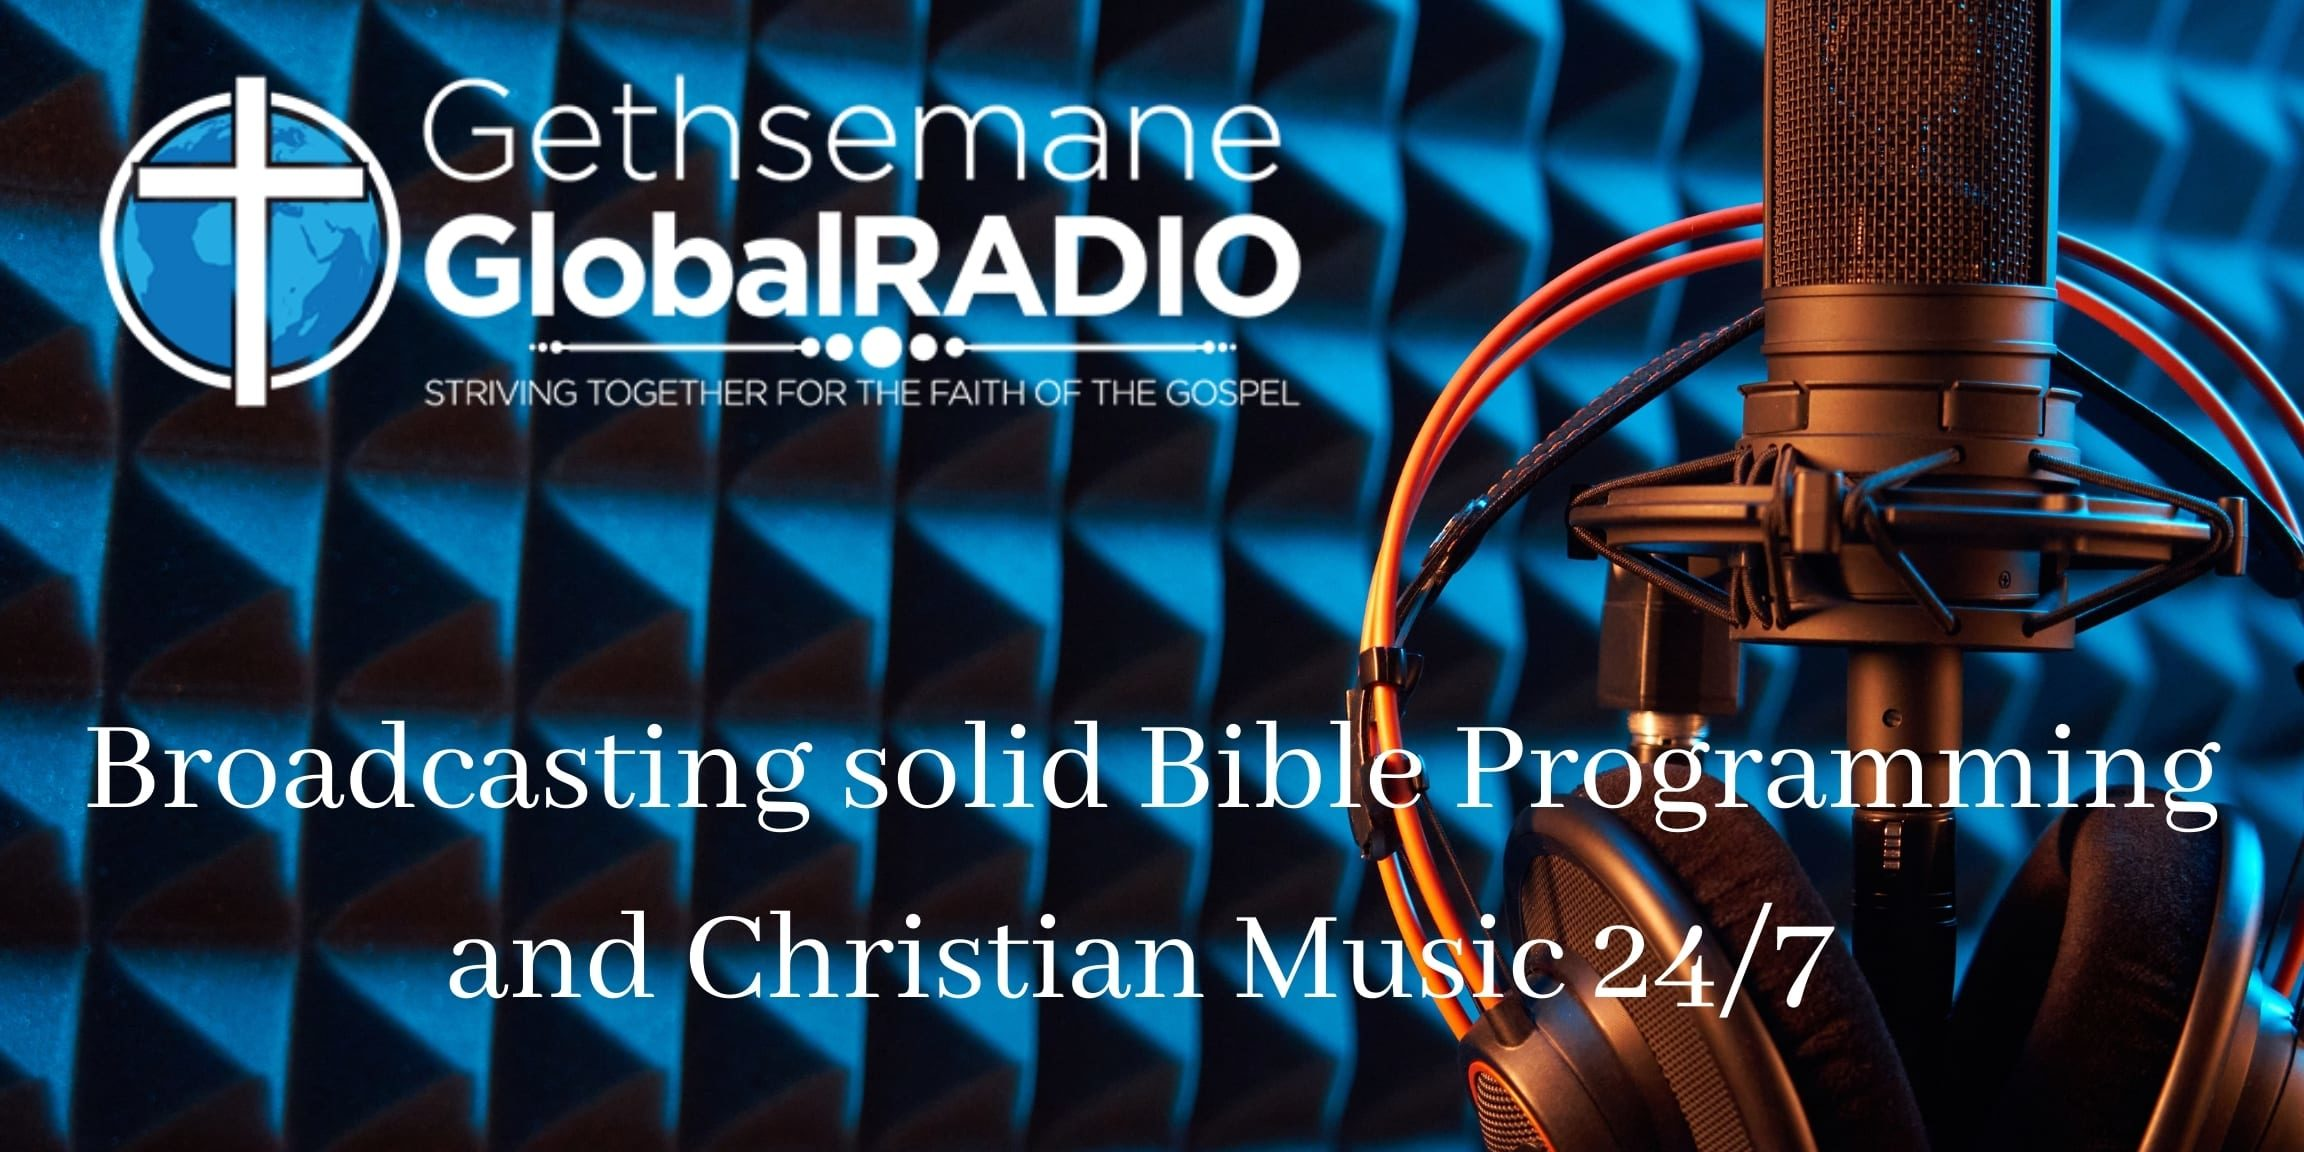 Broadcasting solid Bible Programming and Christian Music 247